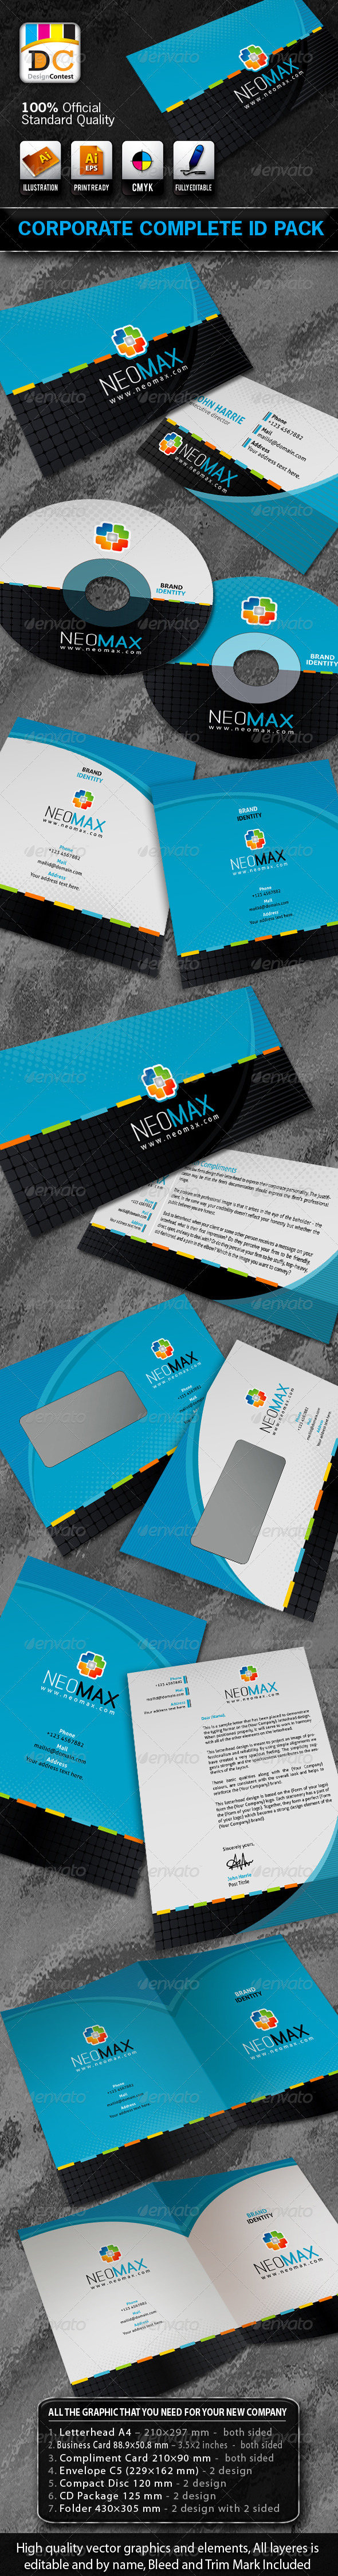 GraphicRiver Neo Max Corporate Complete ID Pack 2615461